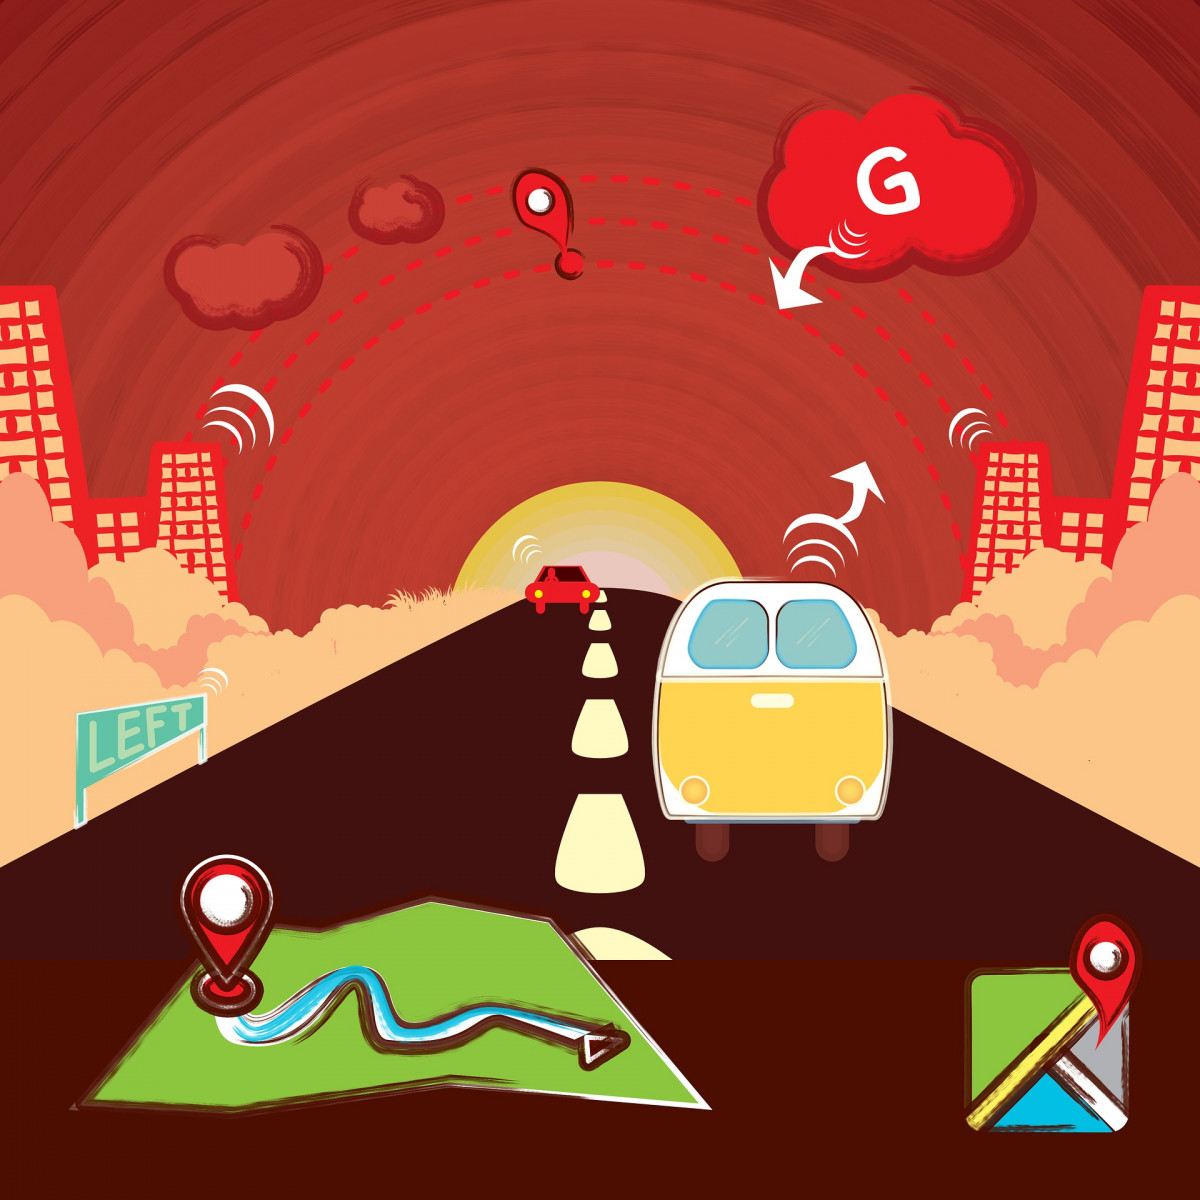 Cheap GPS tracker - Top 5 things to look for